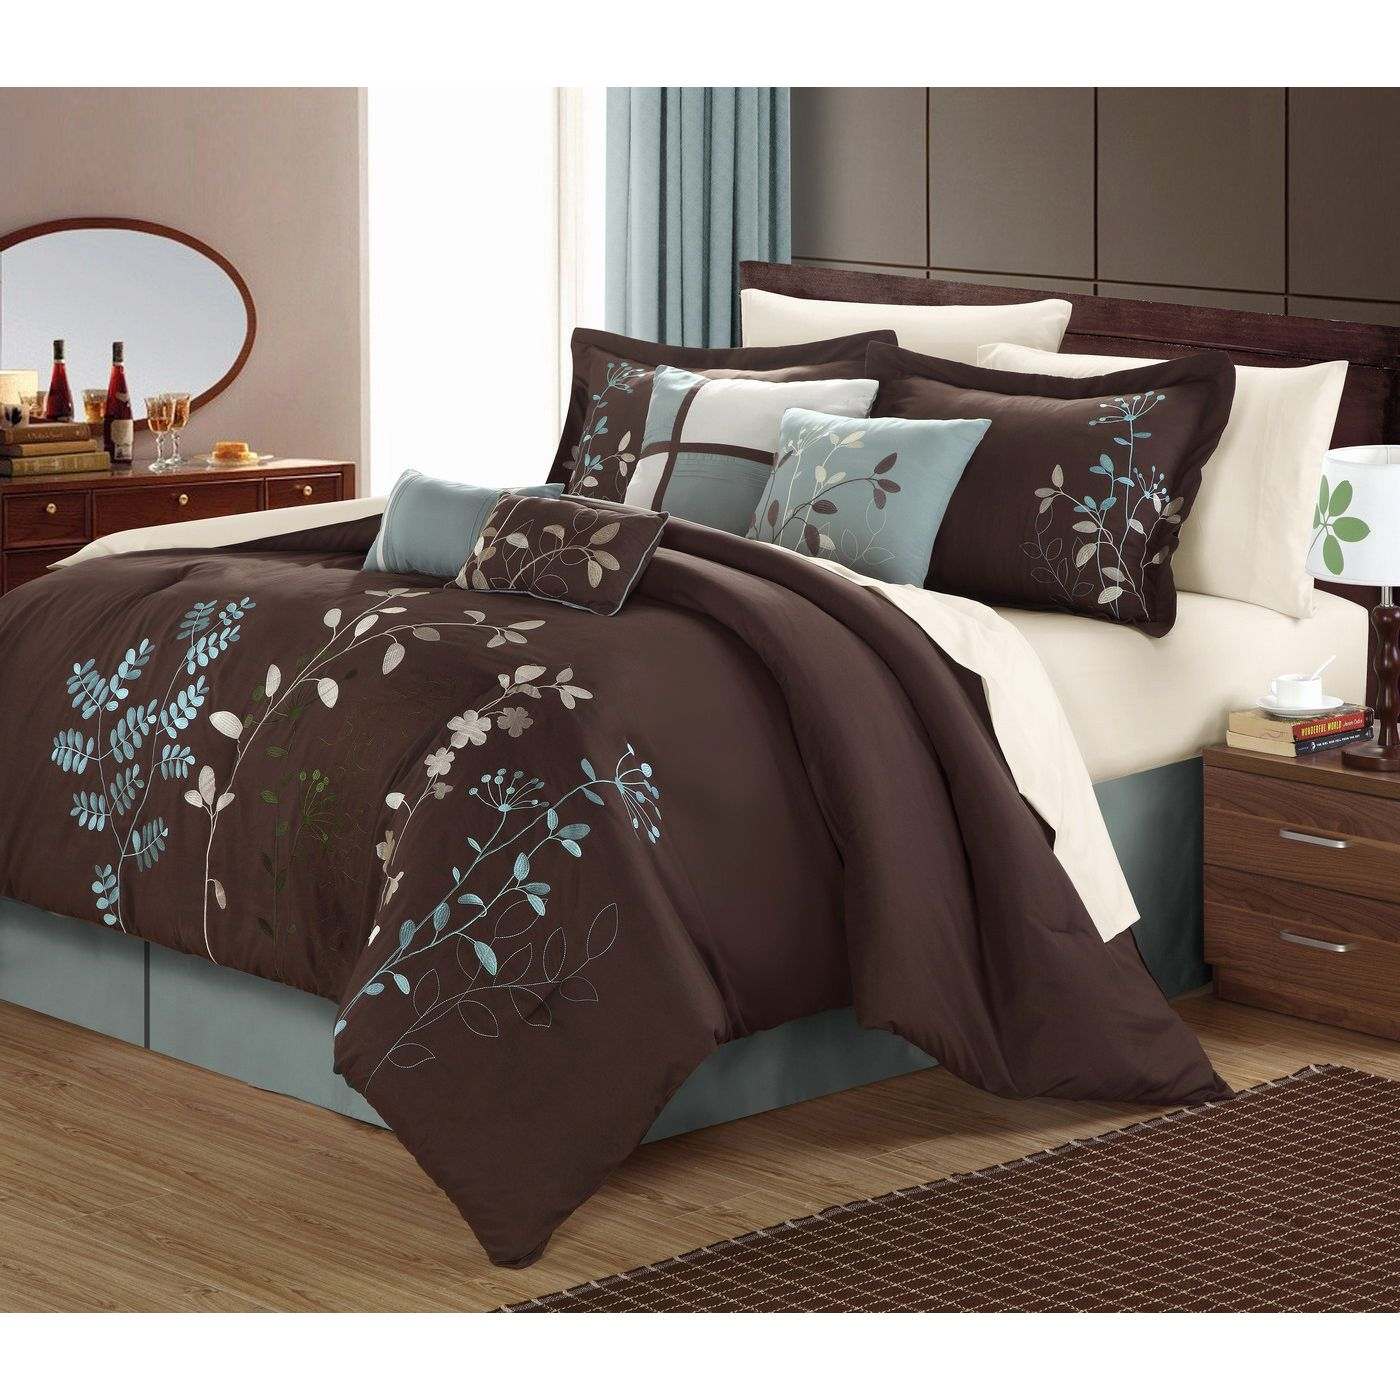 Bliss Garden 8 piece Chocolate Brown forter Set Overstock